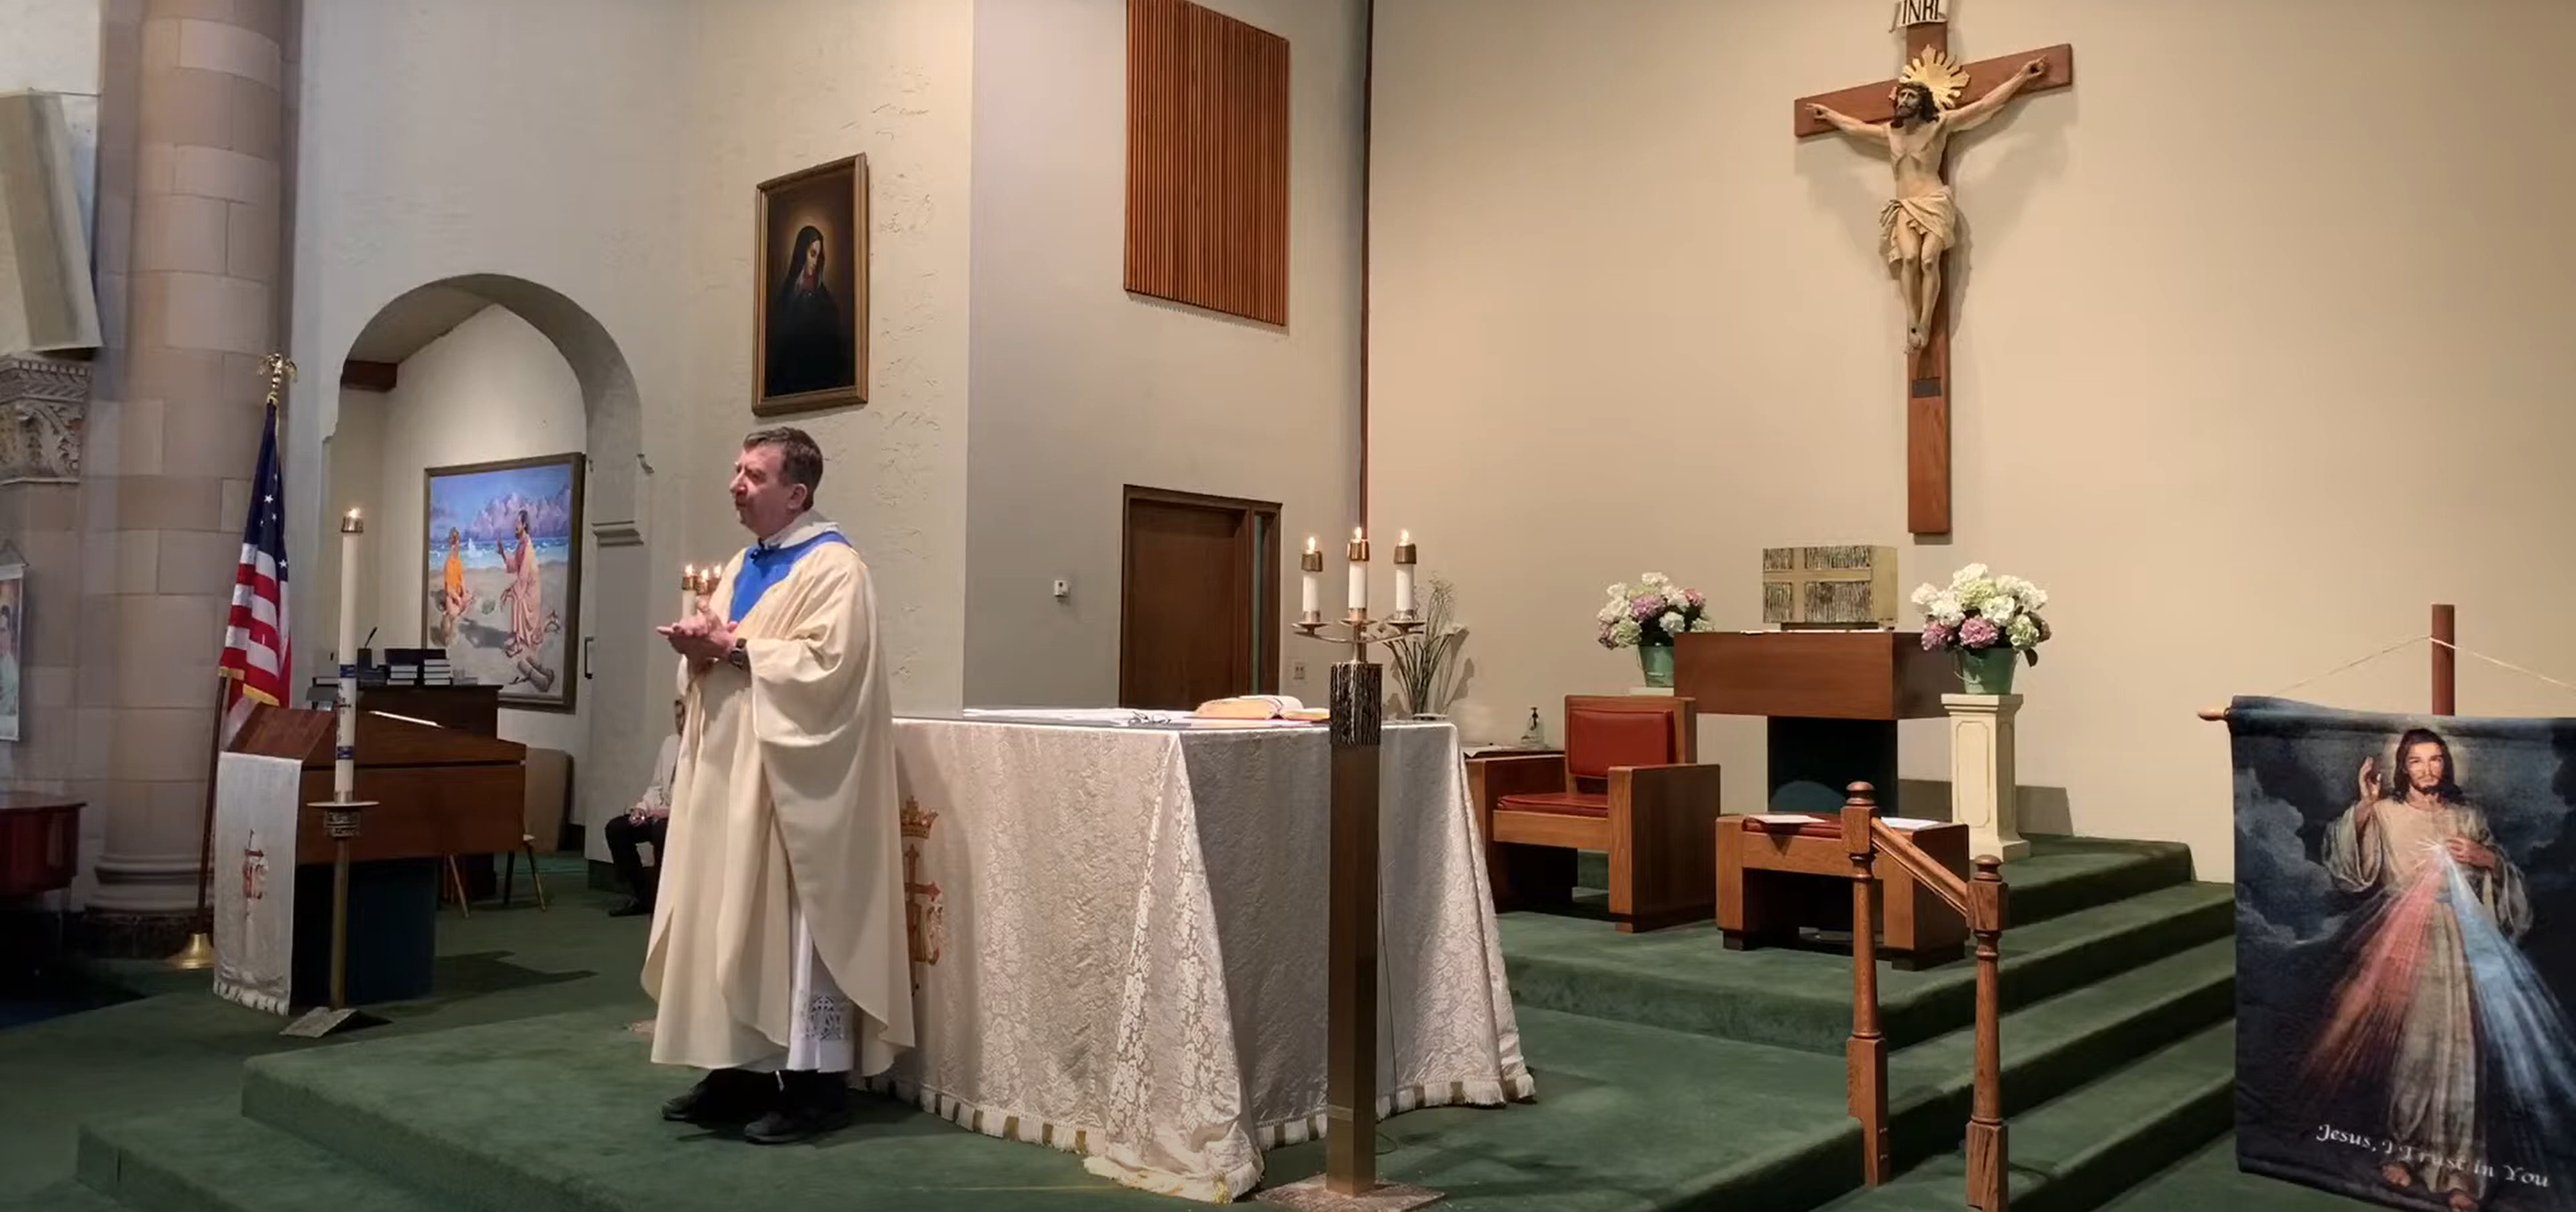 Mass Reflection (May 24, 2020)